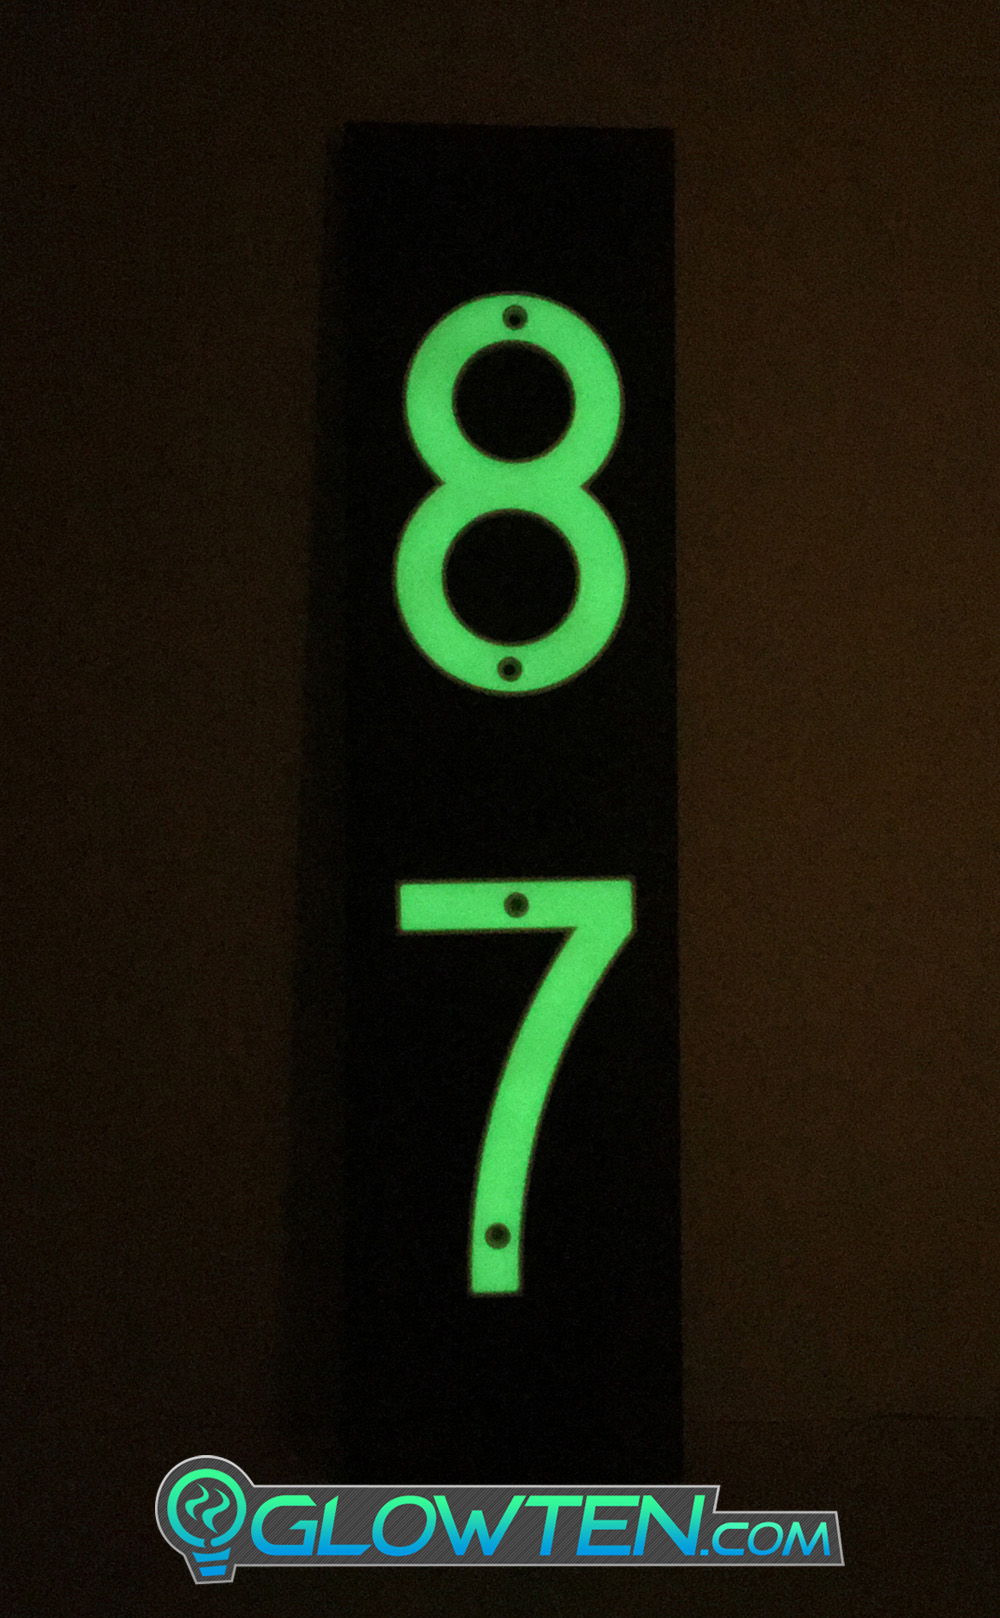 GLOWTEN.com - Resulting In The Glowing Effect, Applications In Front Or Back Yard Of Houses, Homes, Warehouses, Workshops, Addresses, Banners, Advertising, Decor, Decorations, Warning Sign, Sporting Events TWO 2 NUMBERS with BLACK PLAQUE BACKING Glow In Dark House Address Number Vertical Eco Friendly Photoluminescent Sign ABS Material Price For Whole Set ABS Plastic Photoluminescent Pigment picture photo cap preview pic image search 2